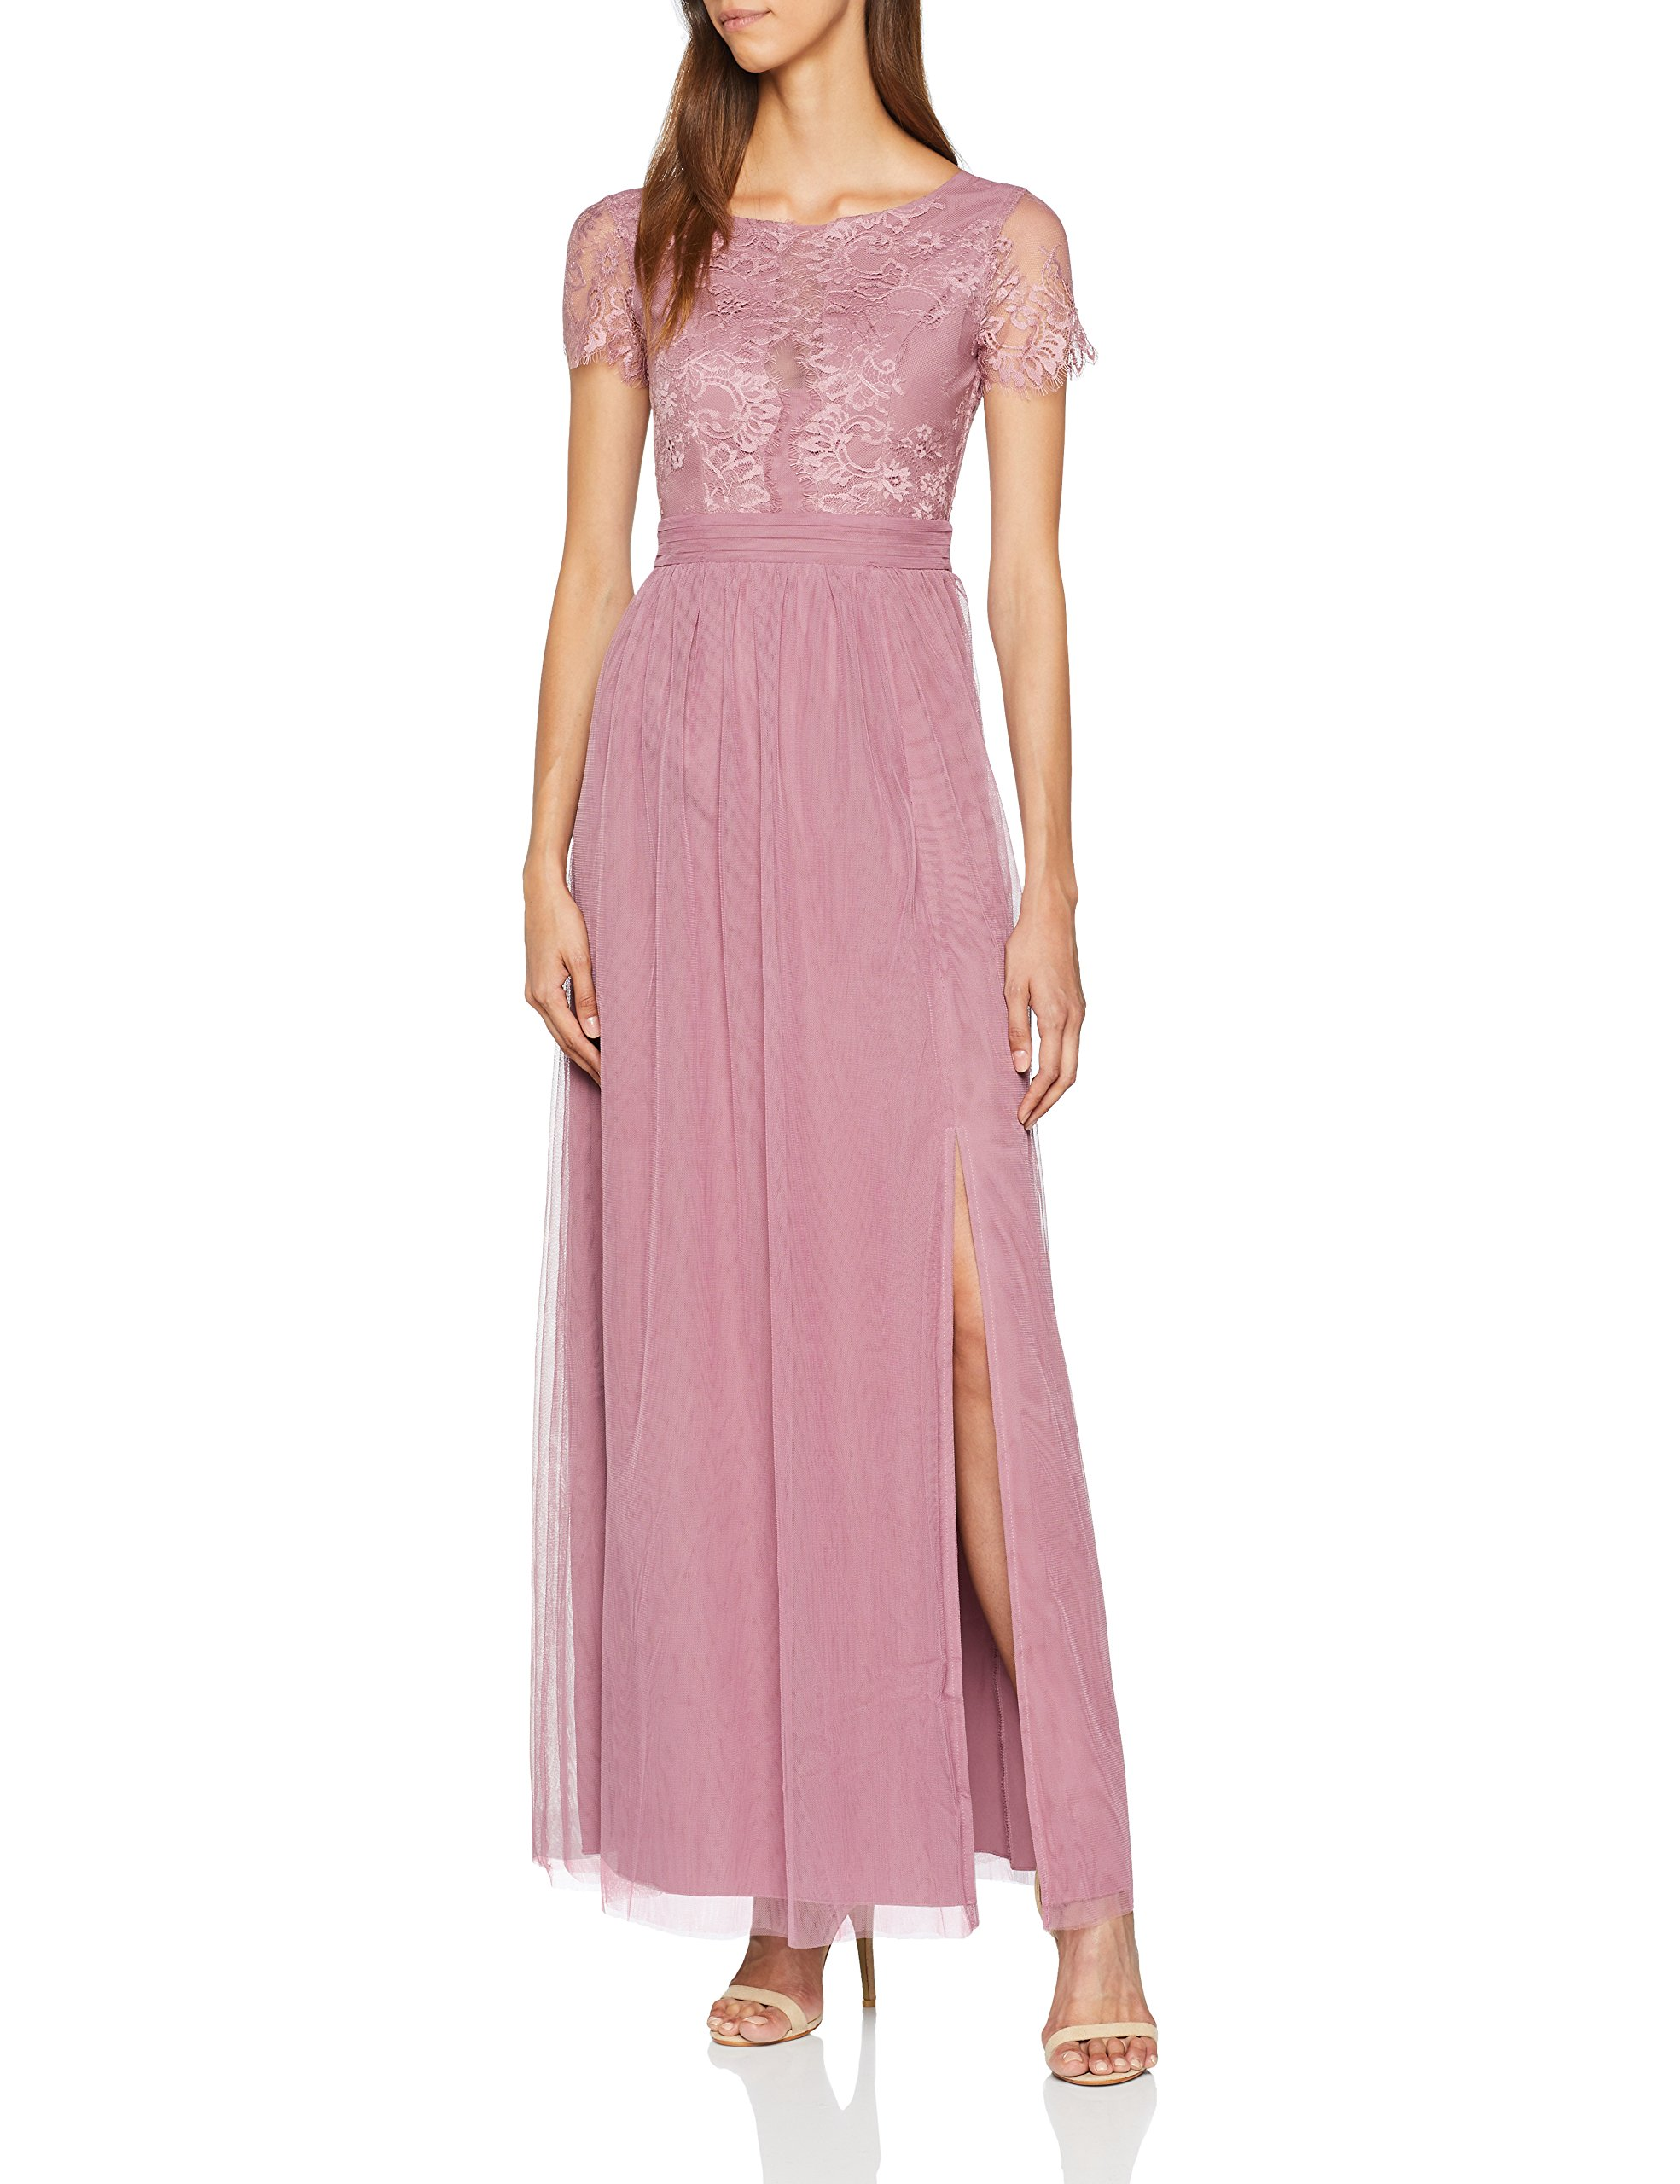 Lace Mistress Maxi Robecanyon Rose Femme Little 00134 UVqGSzMp